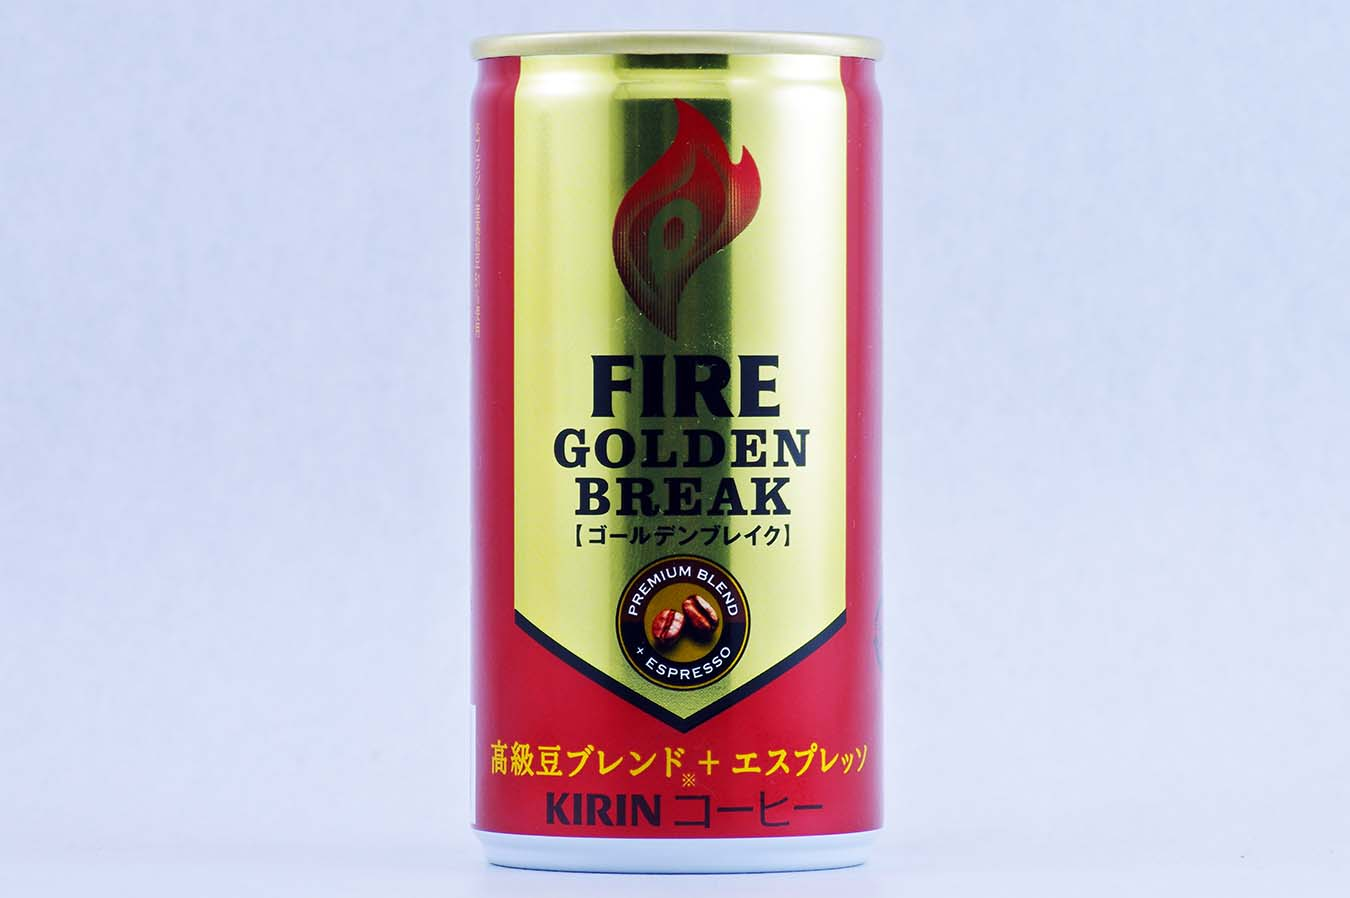 FIRE ゴールデンブレイク 185g缶